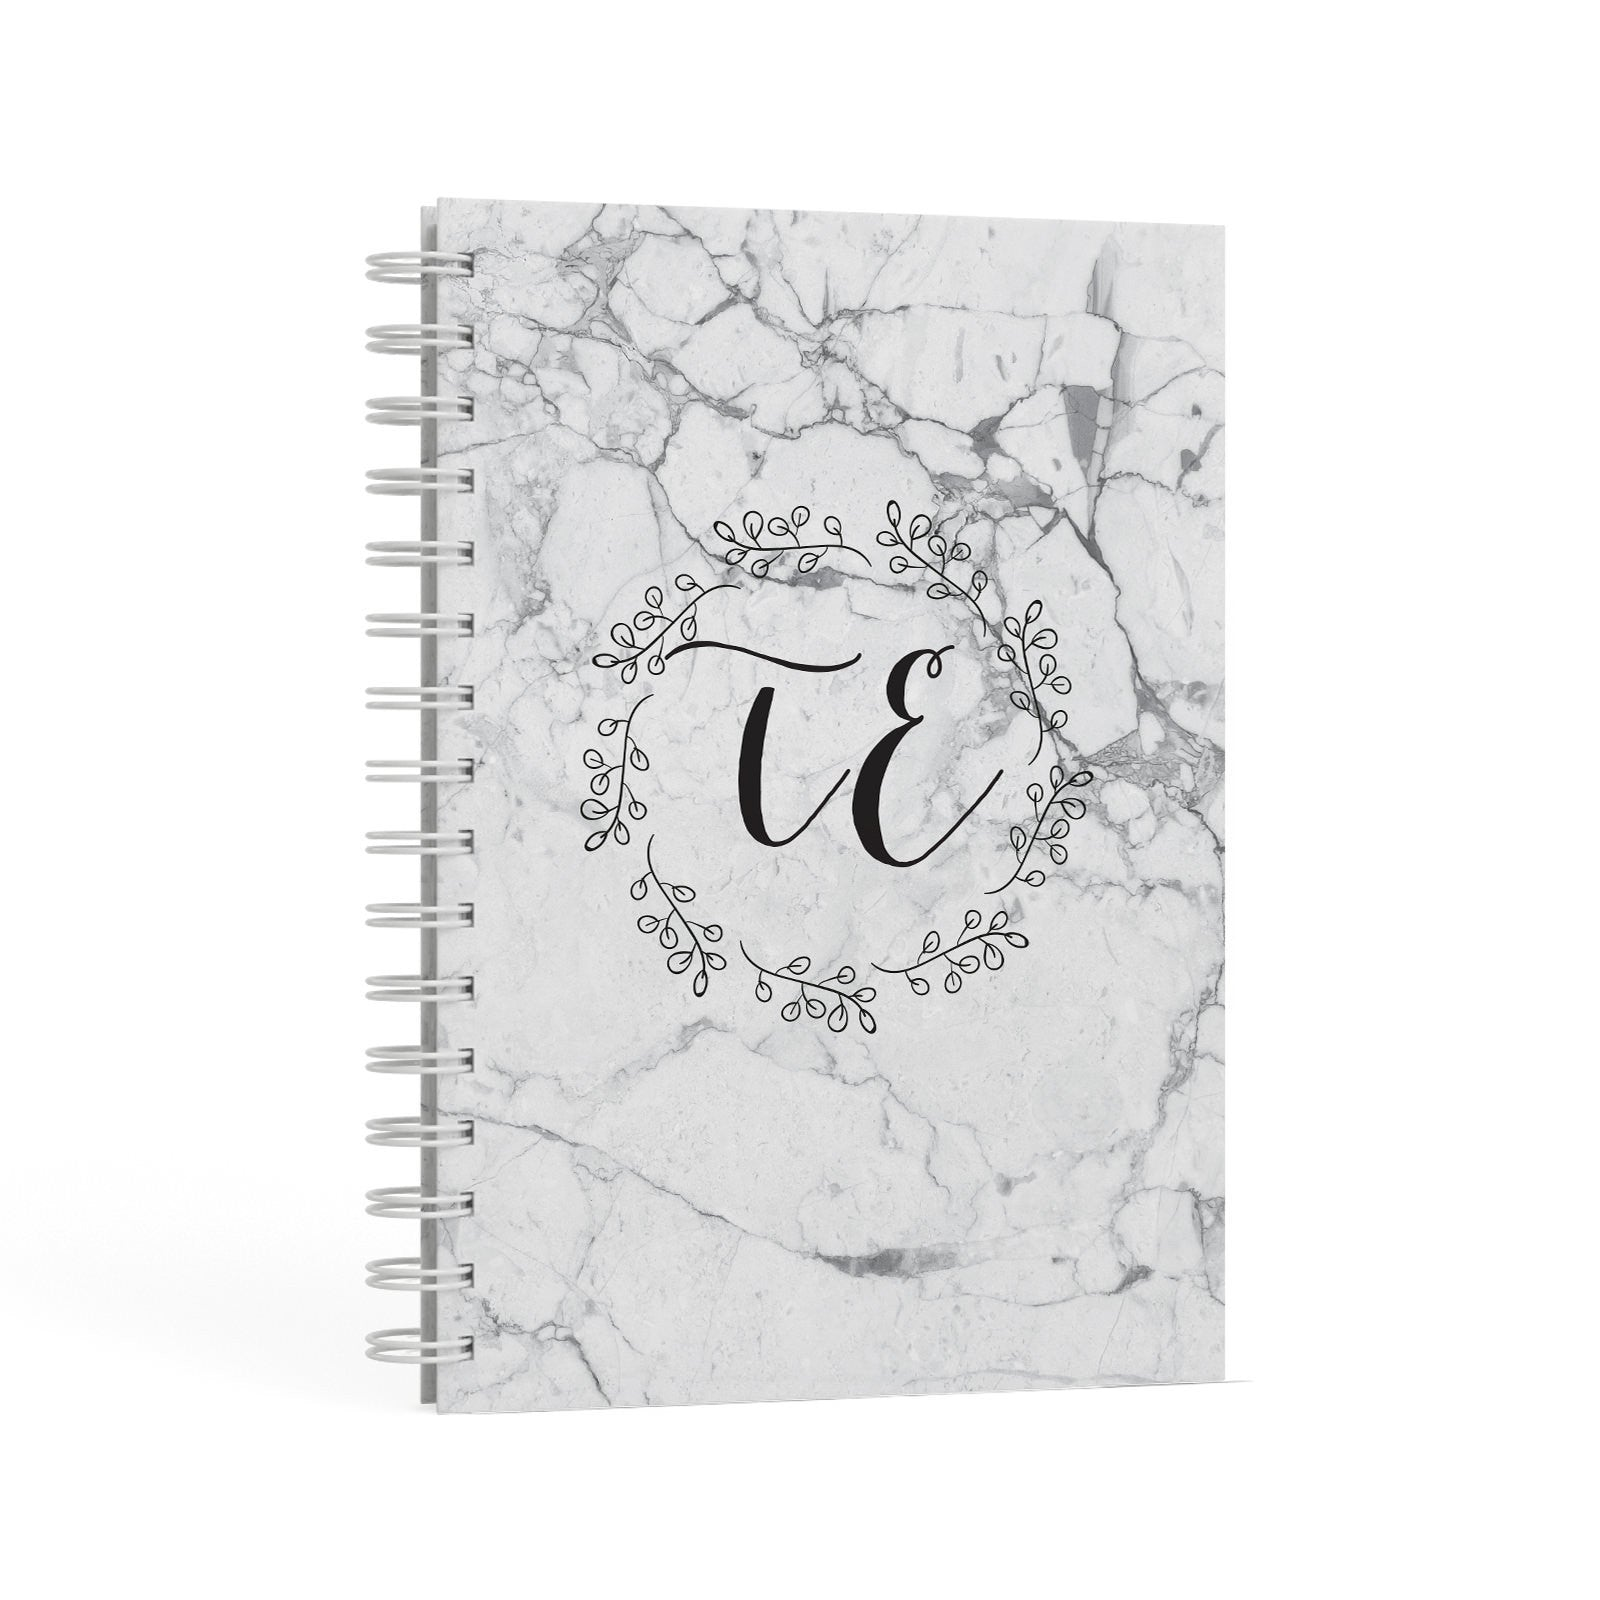 Personalised Initials Marble A5 Hardcover Notebook Second Side View